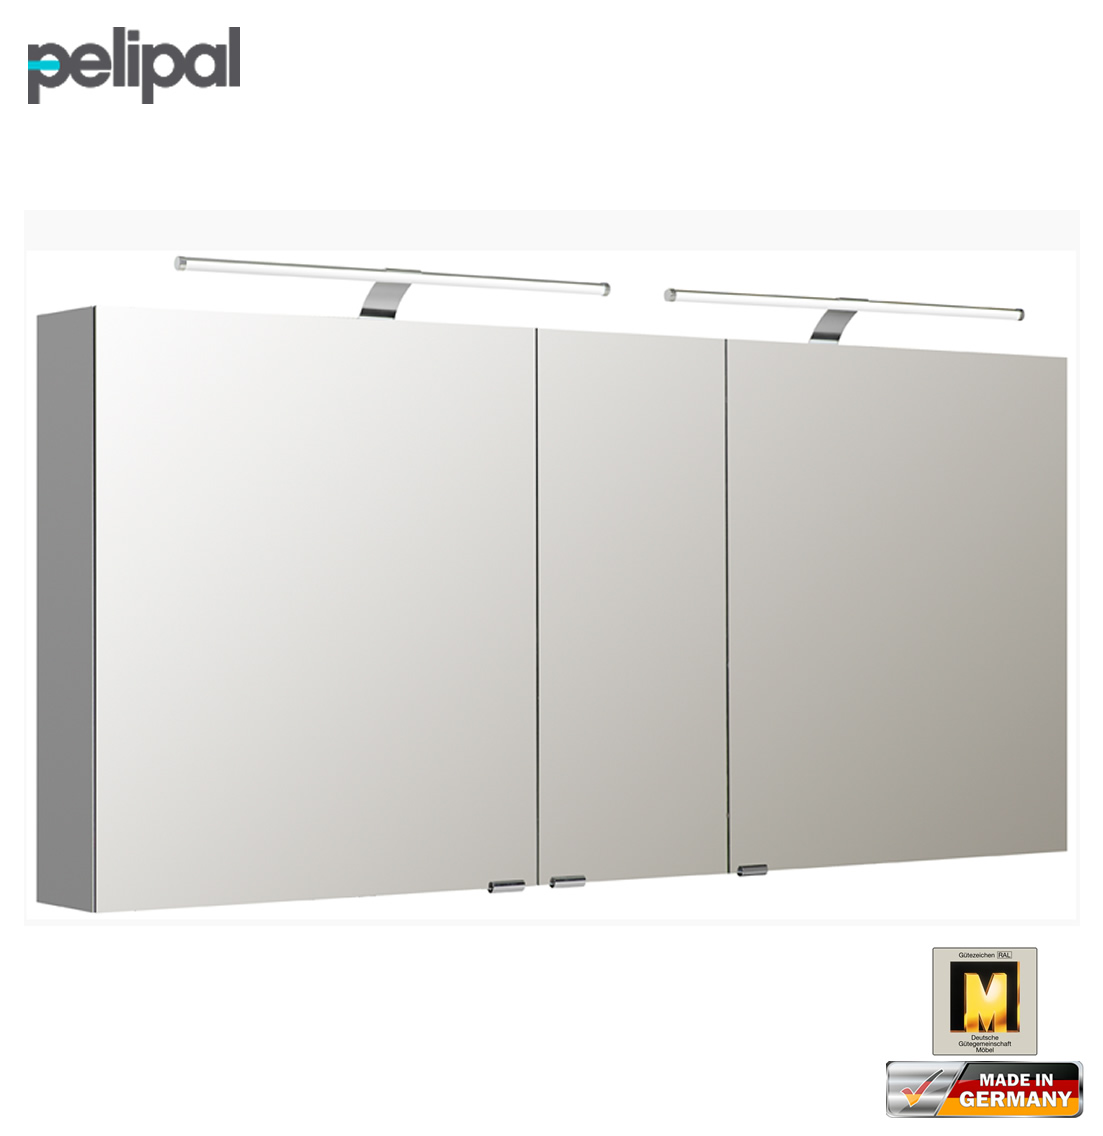 pelipal neutraler spiegelschrank 150 cm mit led aufsatzleuchten s5 spsd 27 impuls home. Black Bedroom Furniture Sets. Home Design Ideas